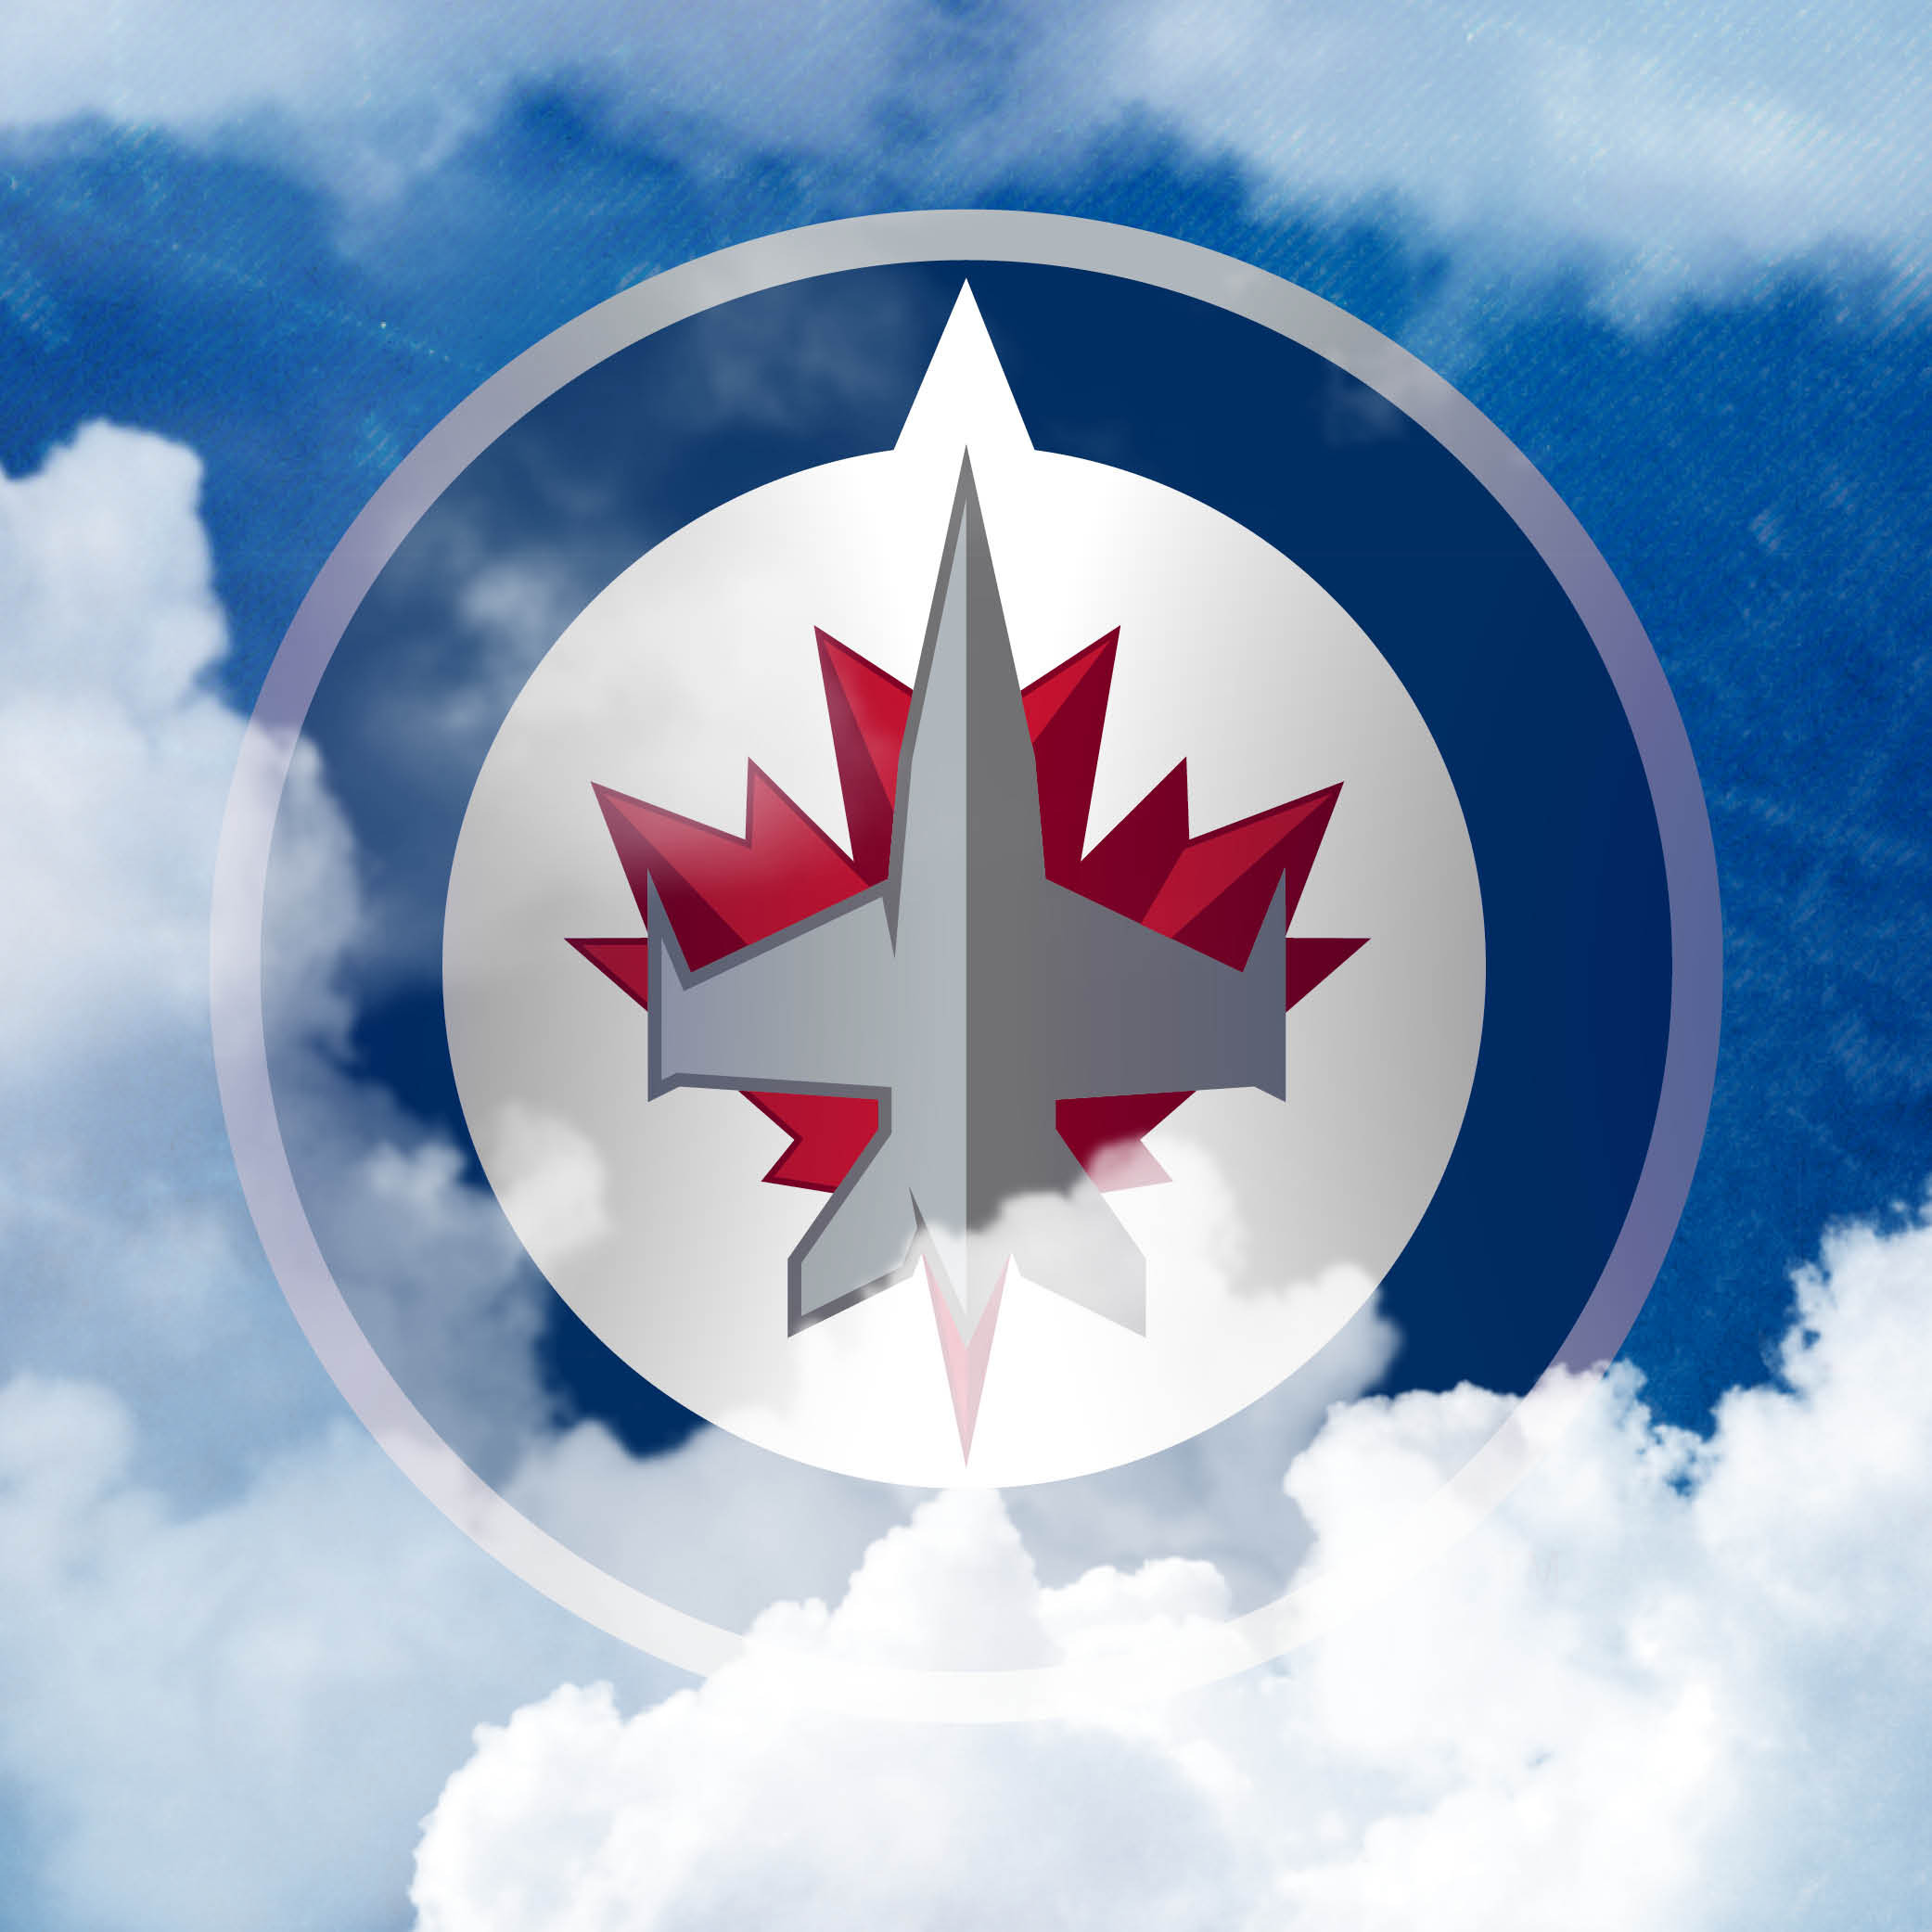 Download Winnipeg Jets Wallpapers Good Pictures of Winnipeg Jets 2083x2083